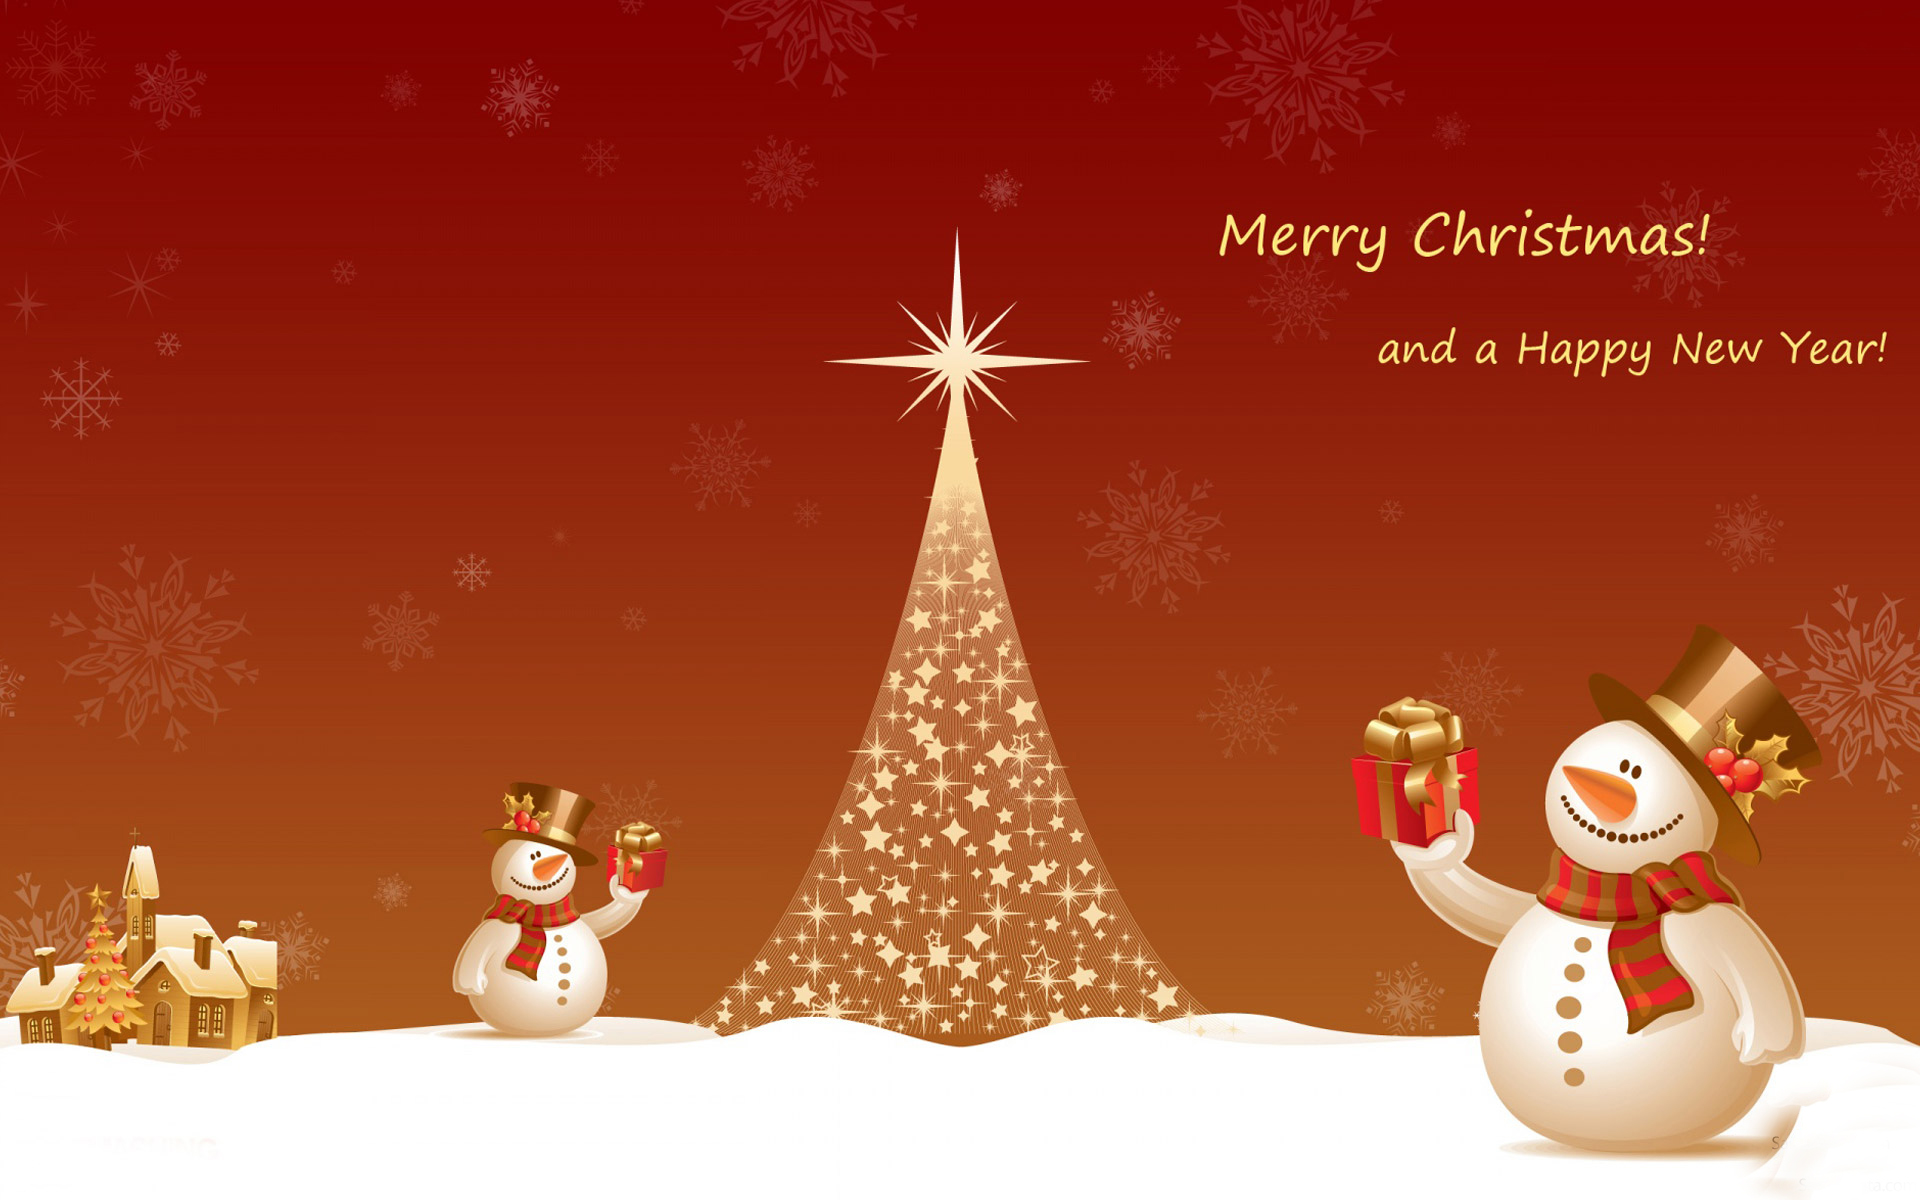 Merry Christmas And Happy New Year Hd Wallpaper - Merry Christmas And Happy New Year Snowman , HD Wallpaper & Backgrounds